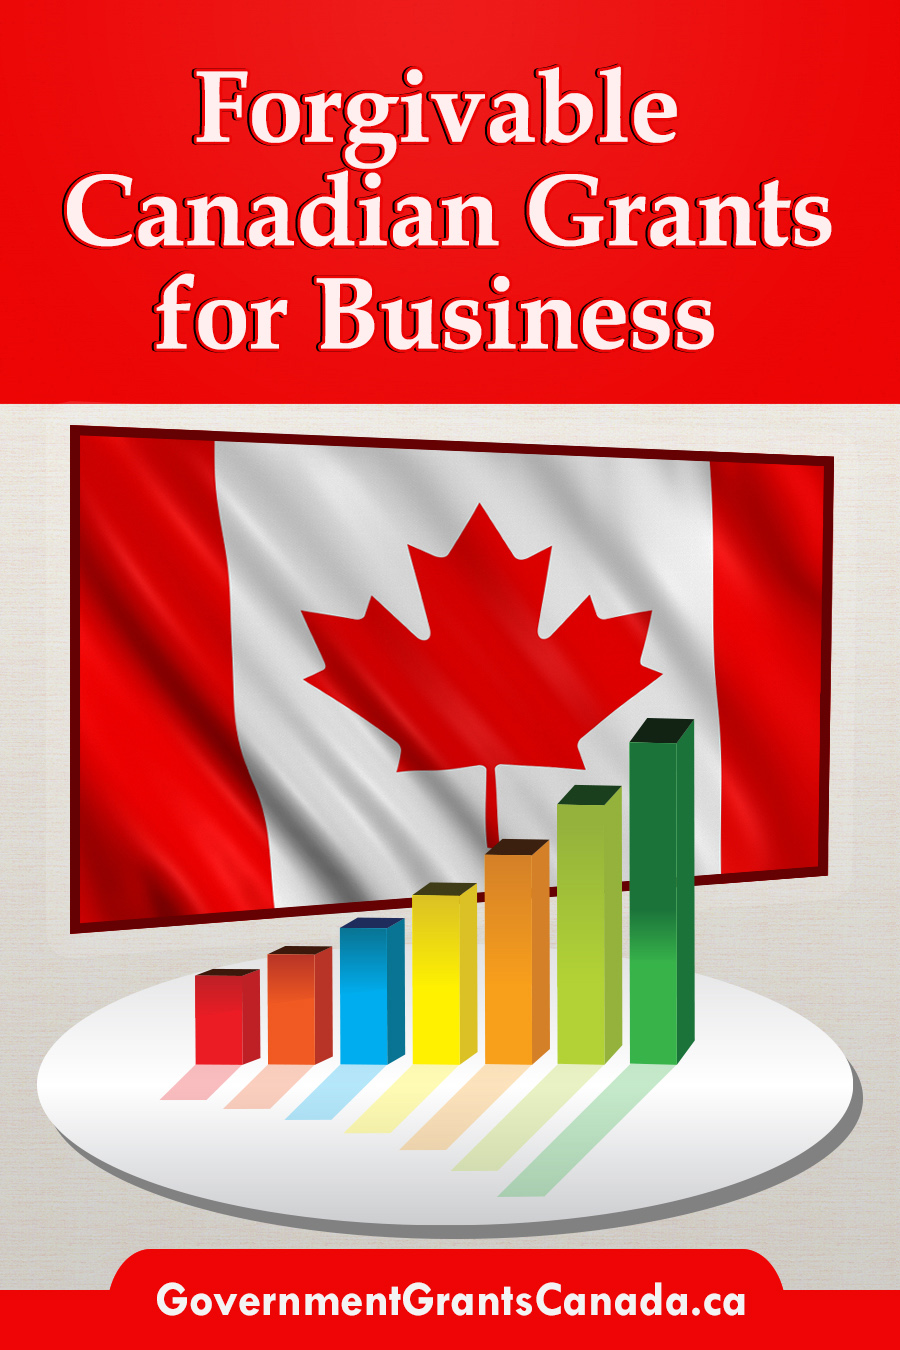 Forgivable Canadian grants for business